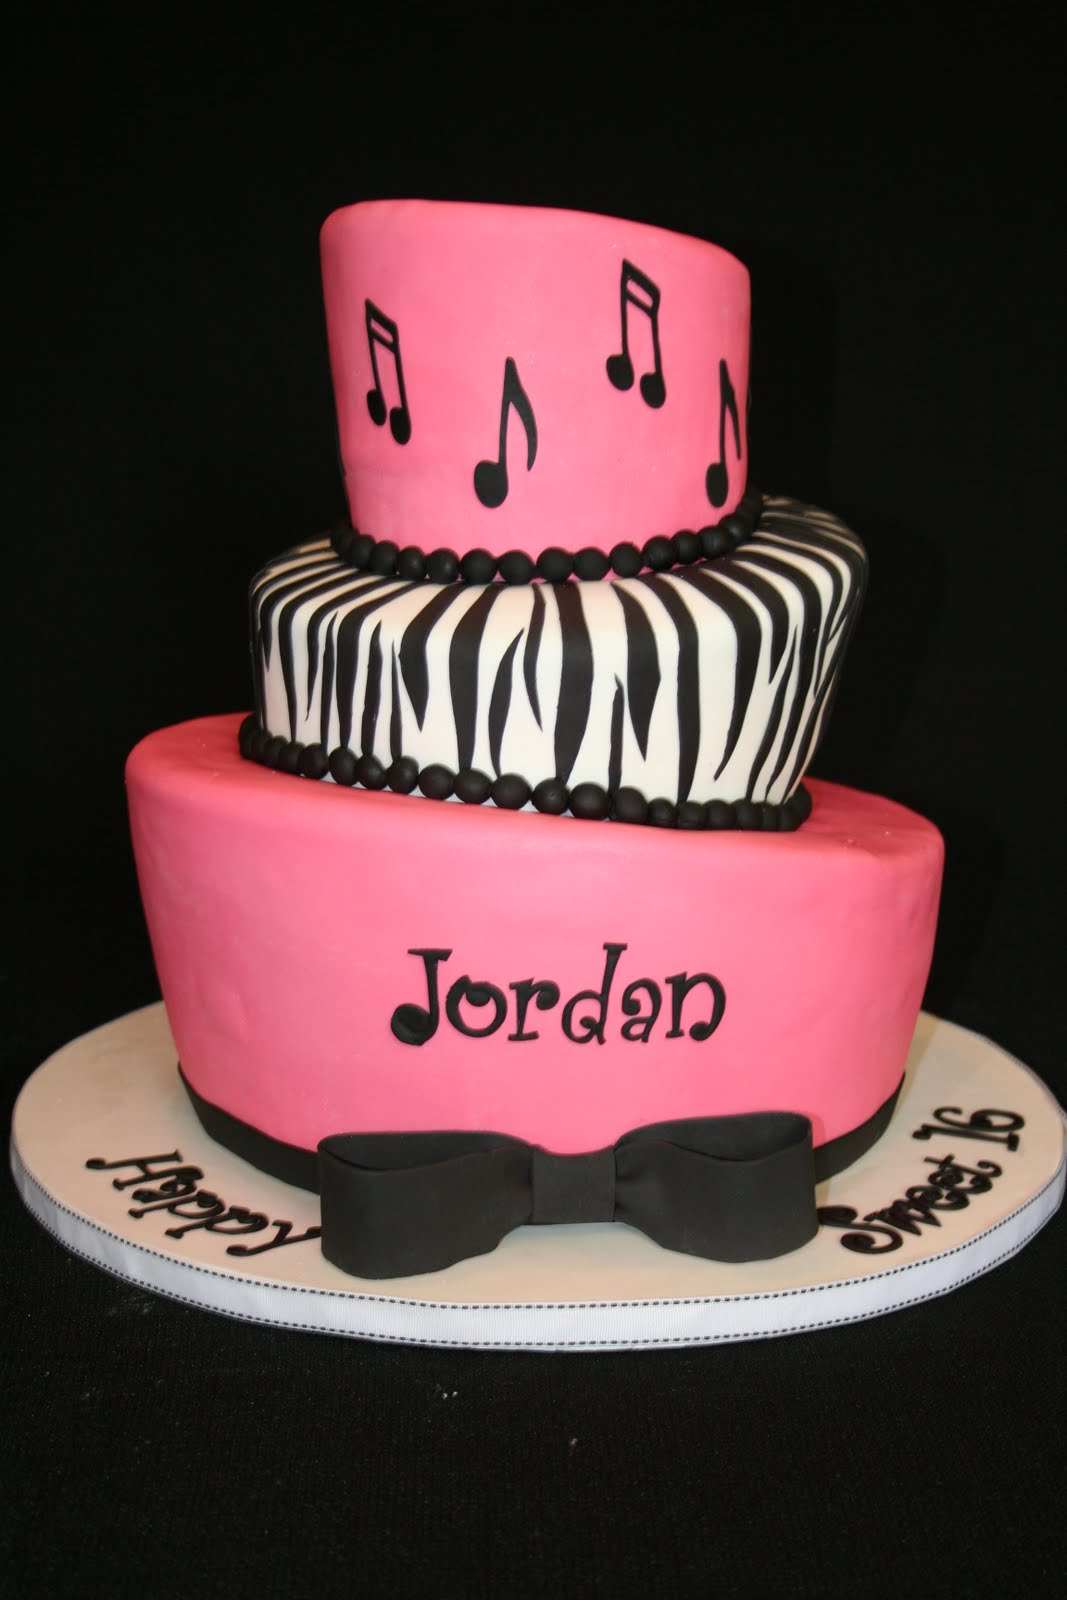 Cake Designs For Sweet Sixteen : Sweet Grace, Cake Designs: Topsy Turvy Sweet Sixteen Cake